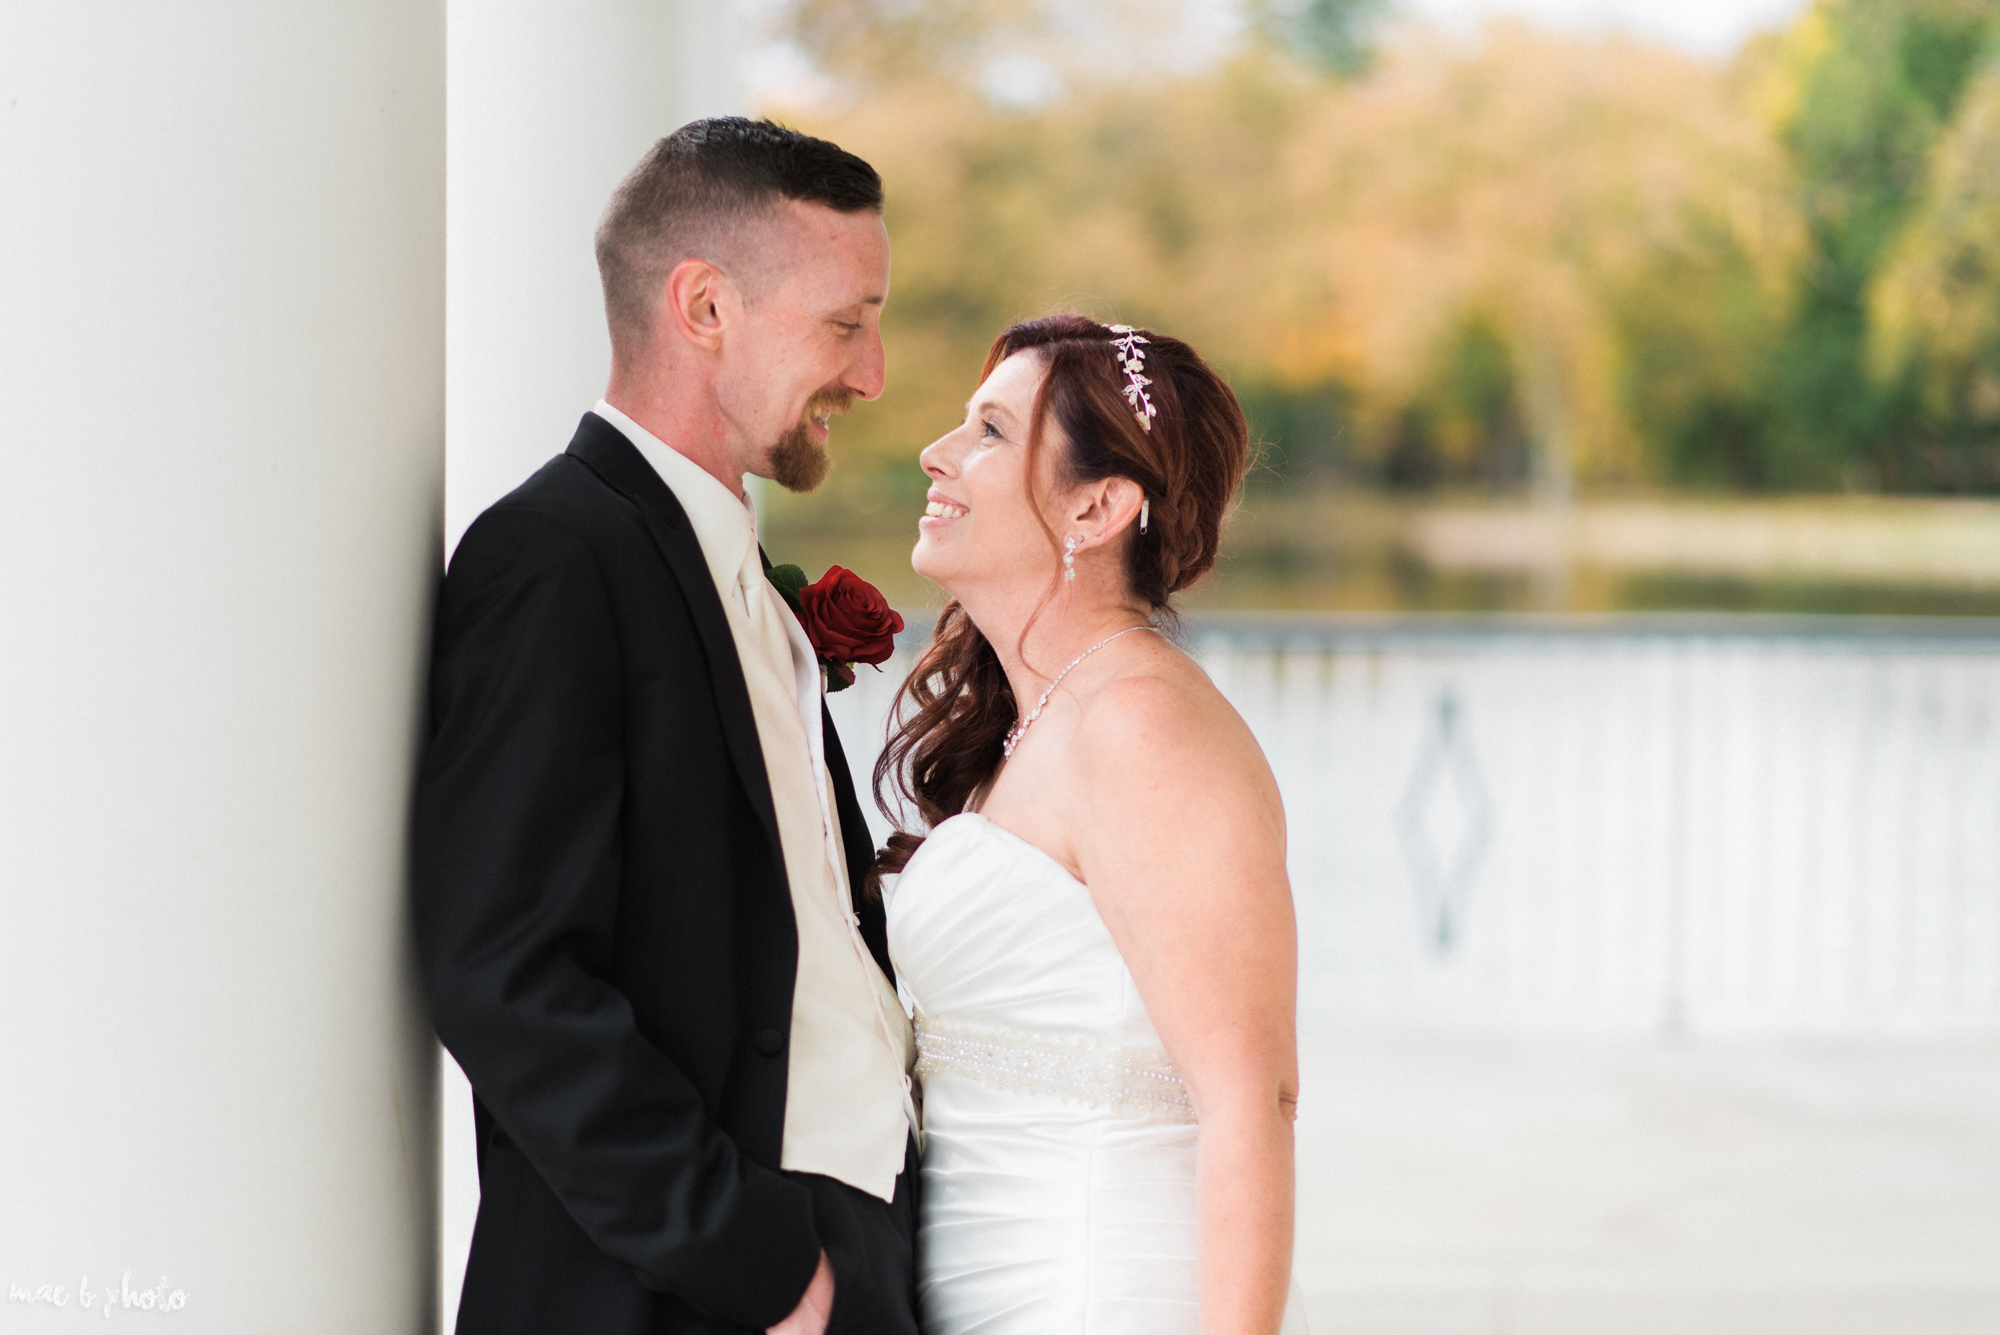 tracey and aaron's personal fall wedding at tiffany's banquet center in brookfield ohio-66.jpg